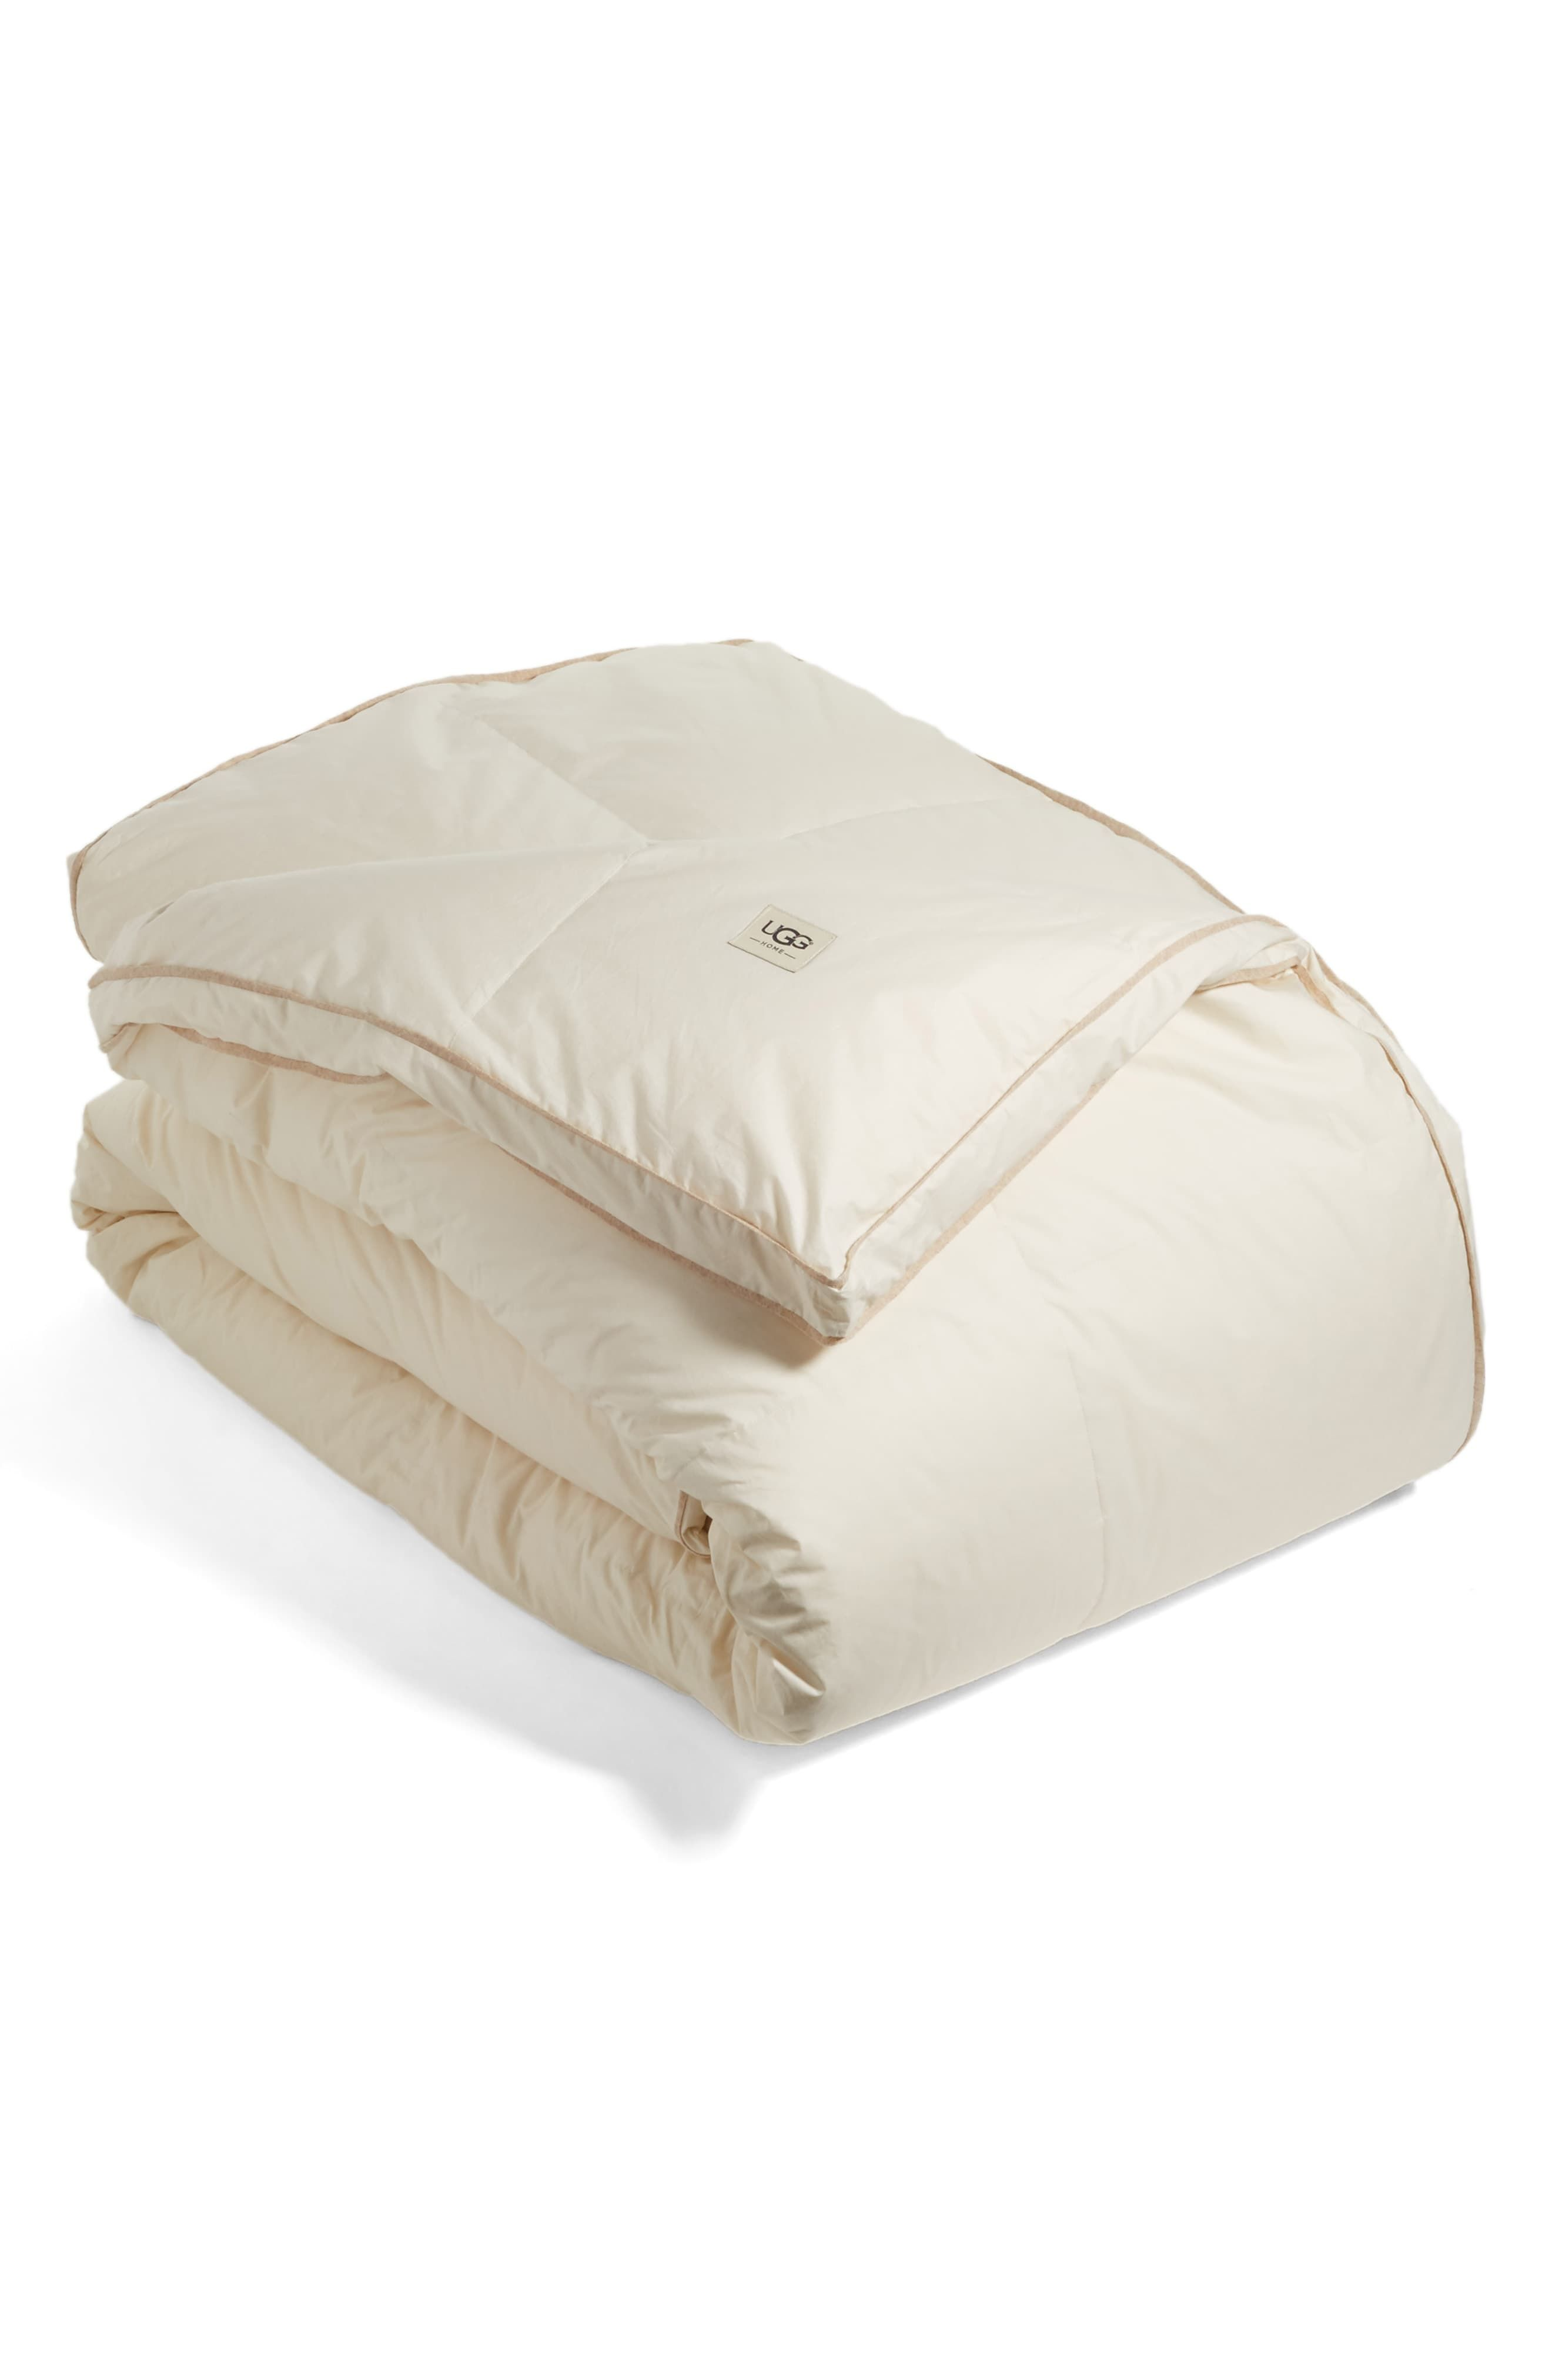 Ugg Year Round 300 Thread Count Down Comforter Down Comforter Comforters Uggs